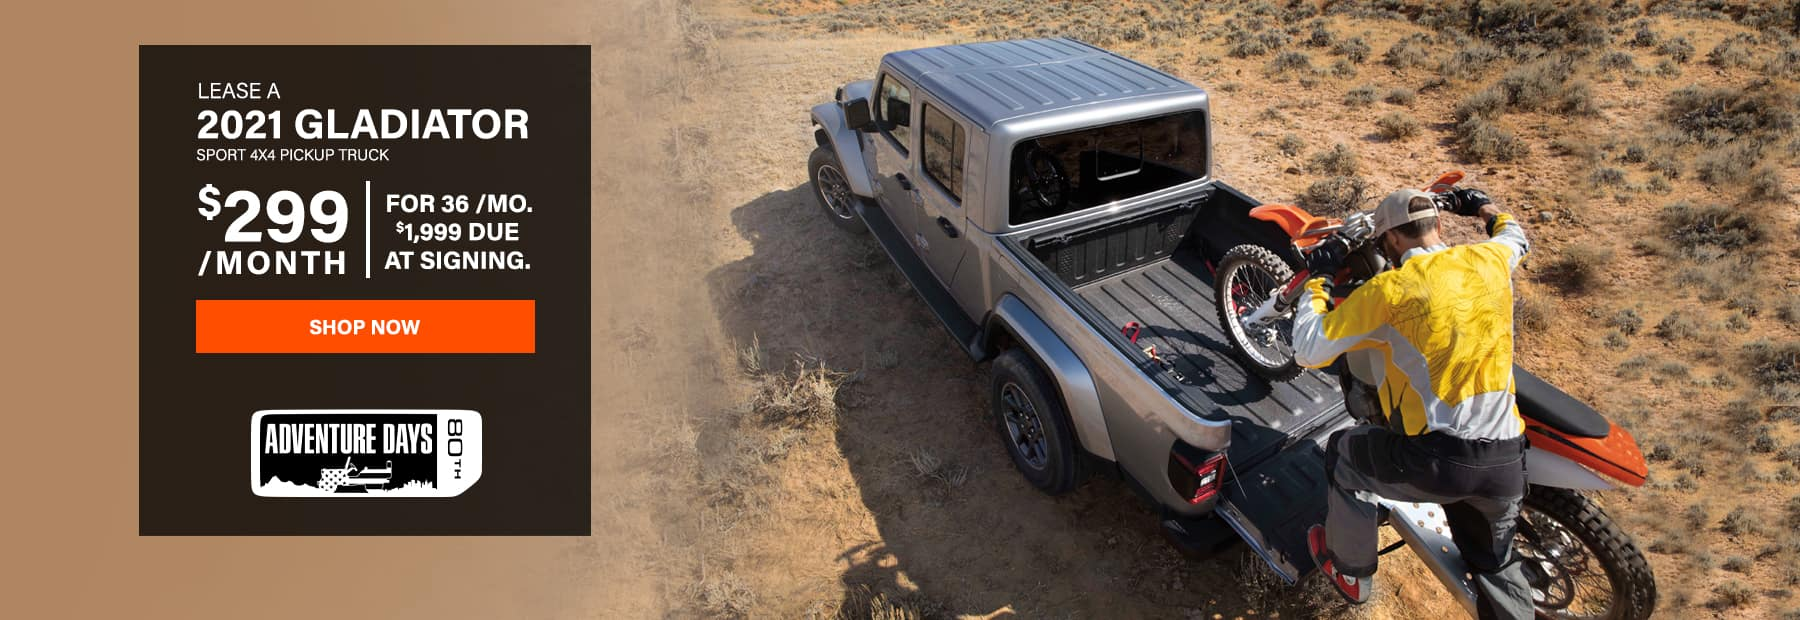 Lease a 2021 Jeep Gladiator Sport 4x4 Pickup Truck for $299/mo. for 36 mos. with $1,999 down